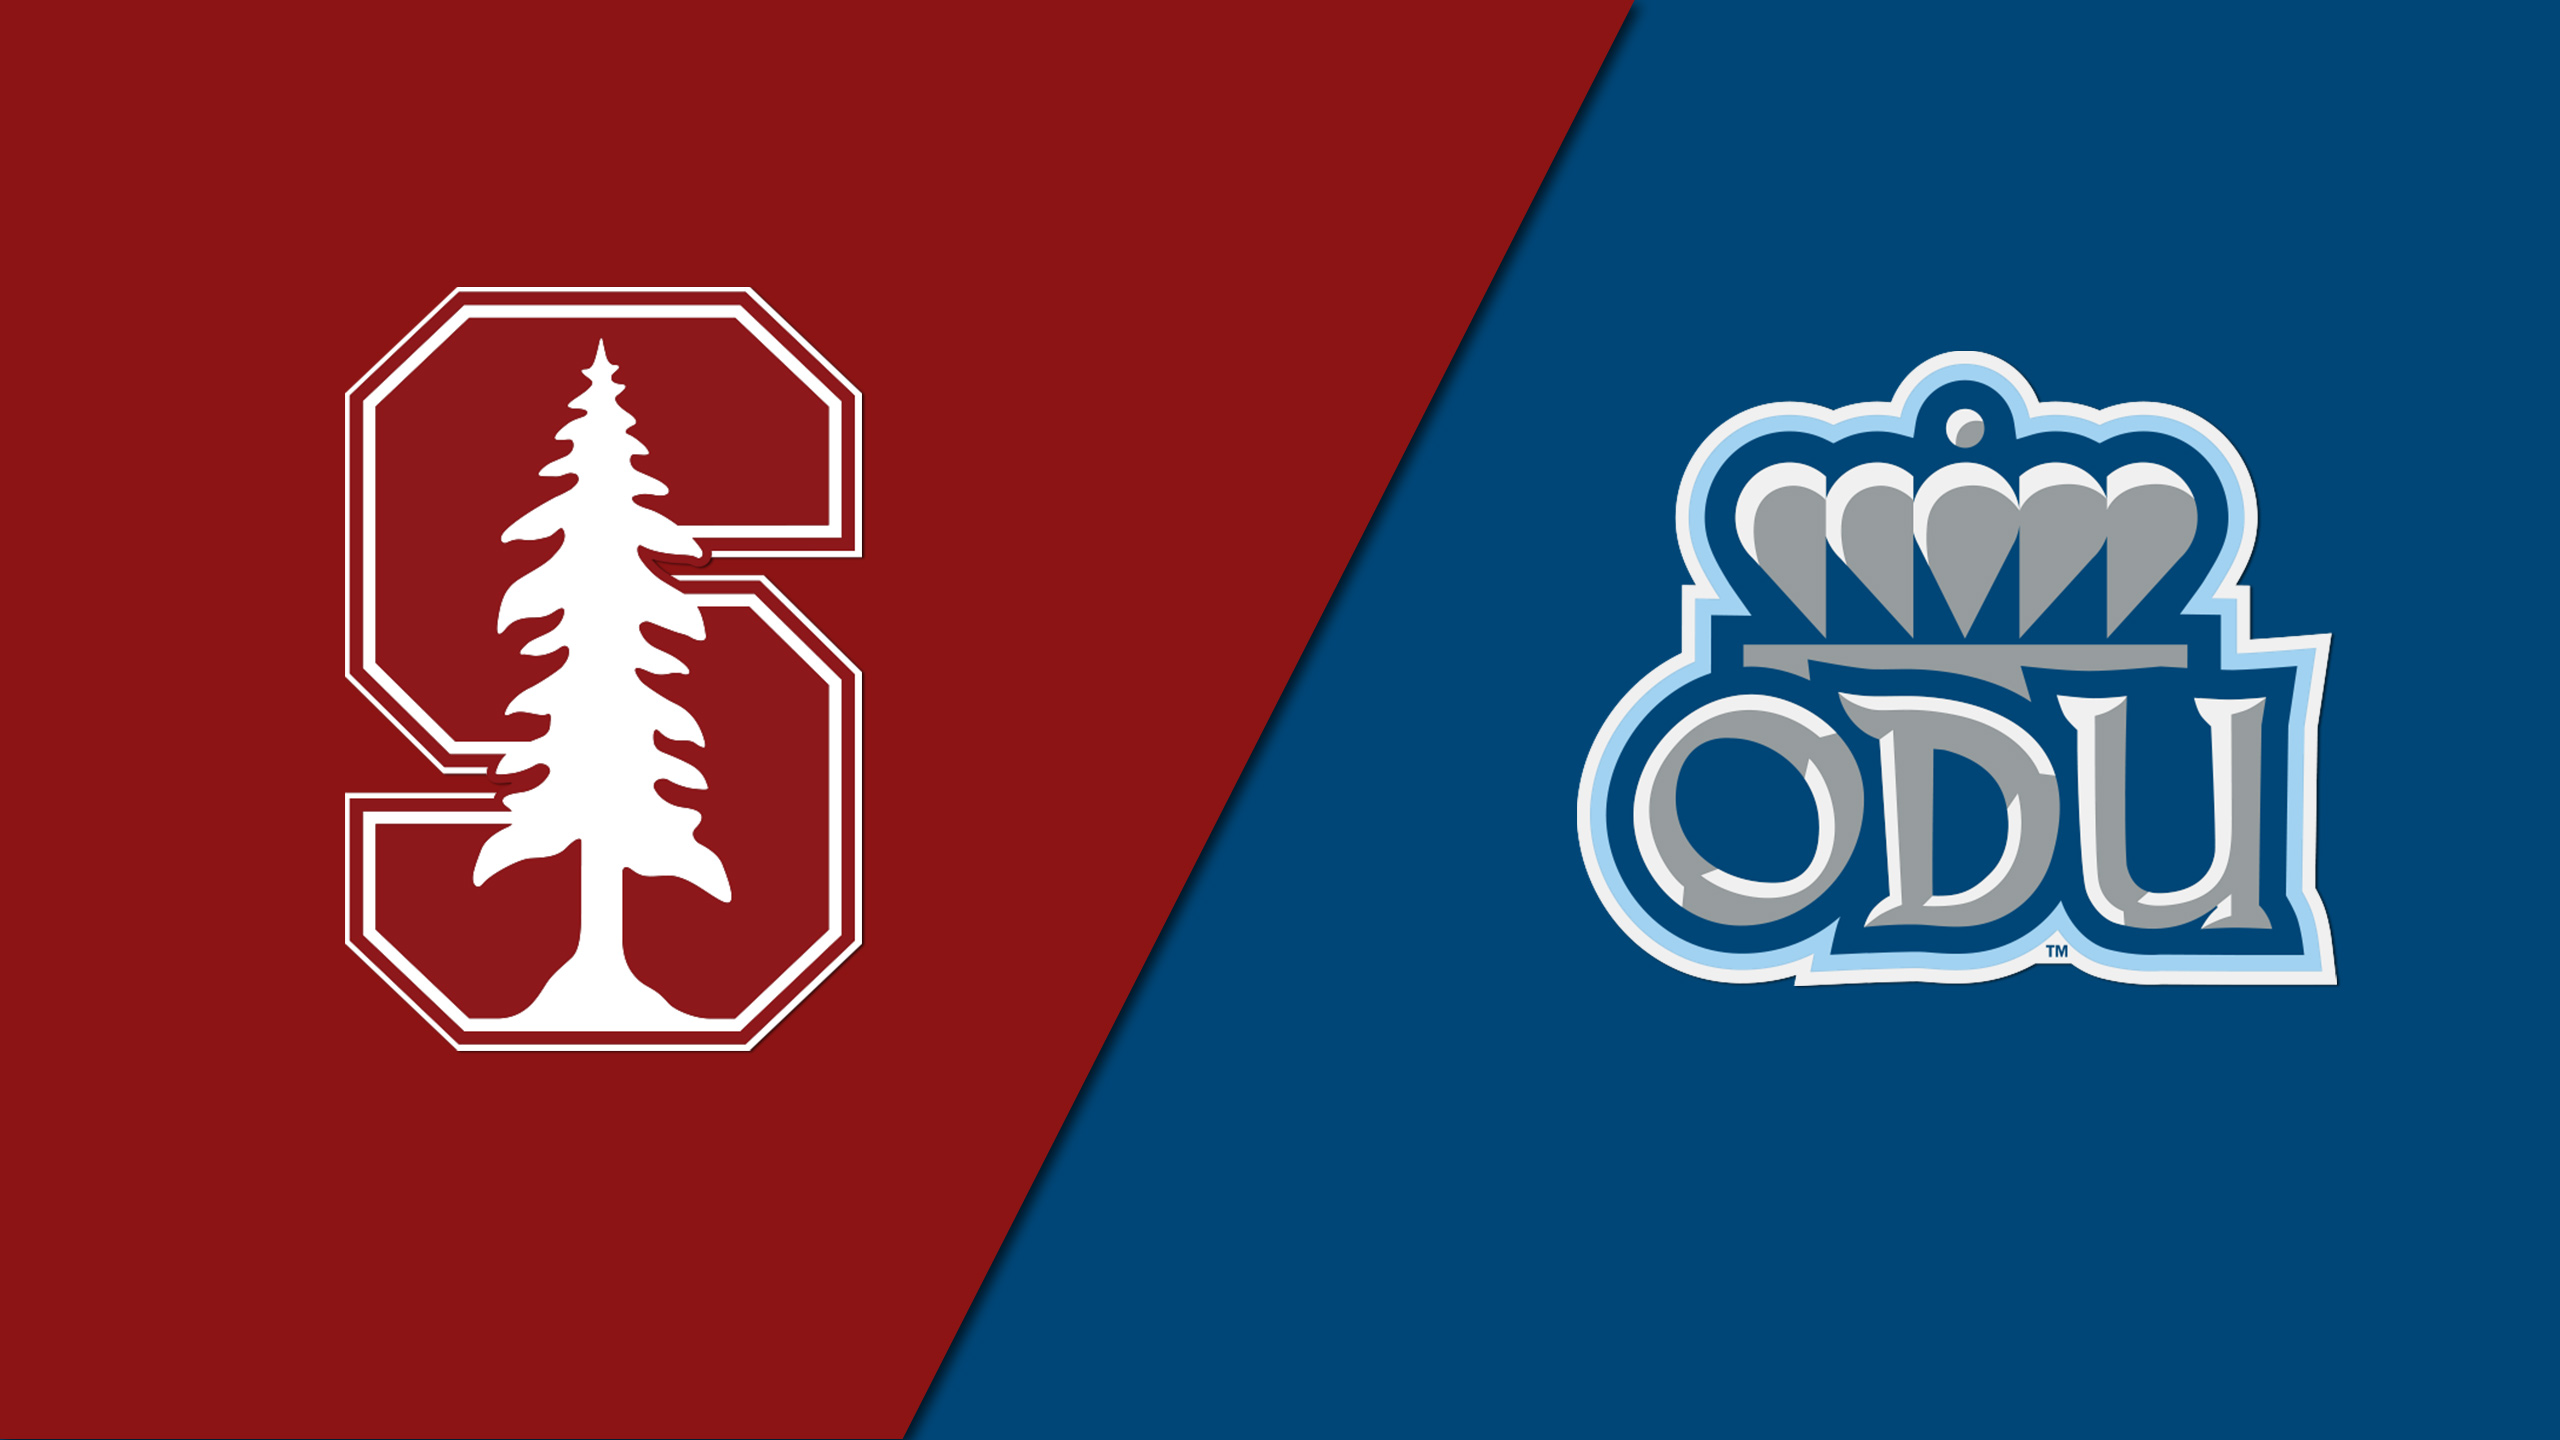 #2 Stanford vs. #1 Old Dominion (Semifinal #2) (re-air)